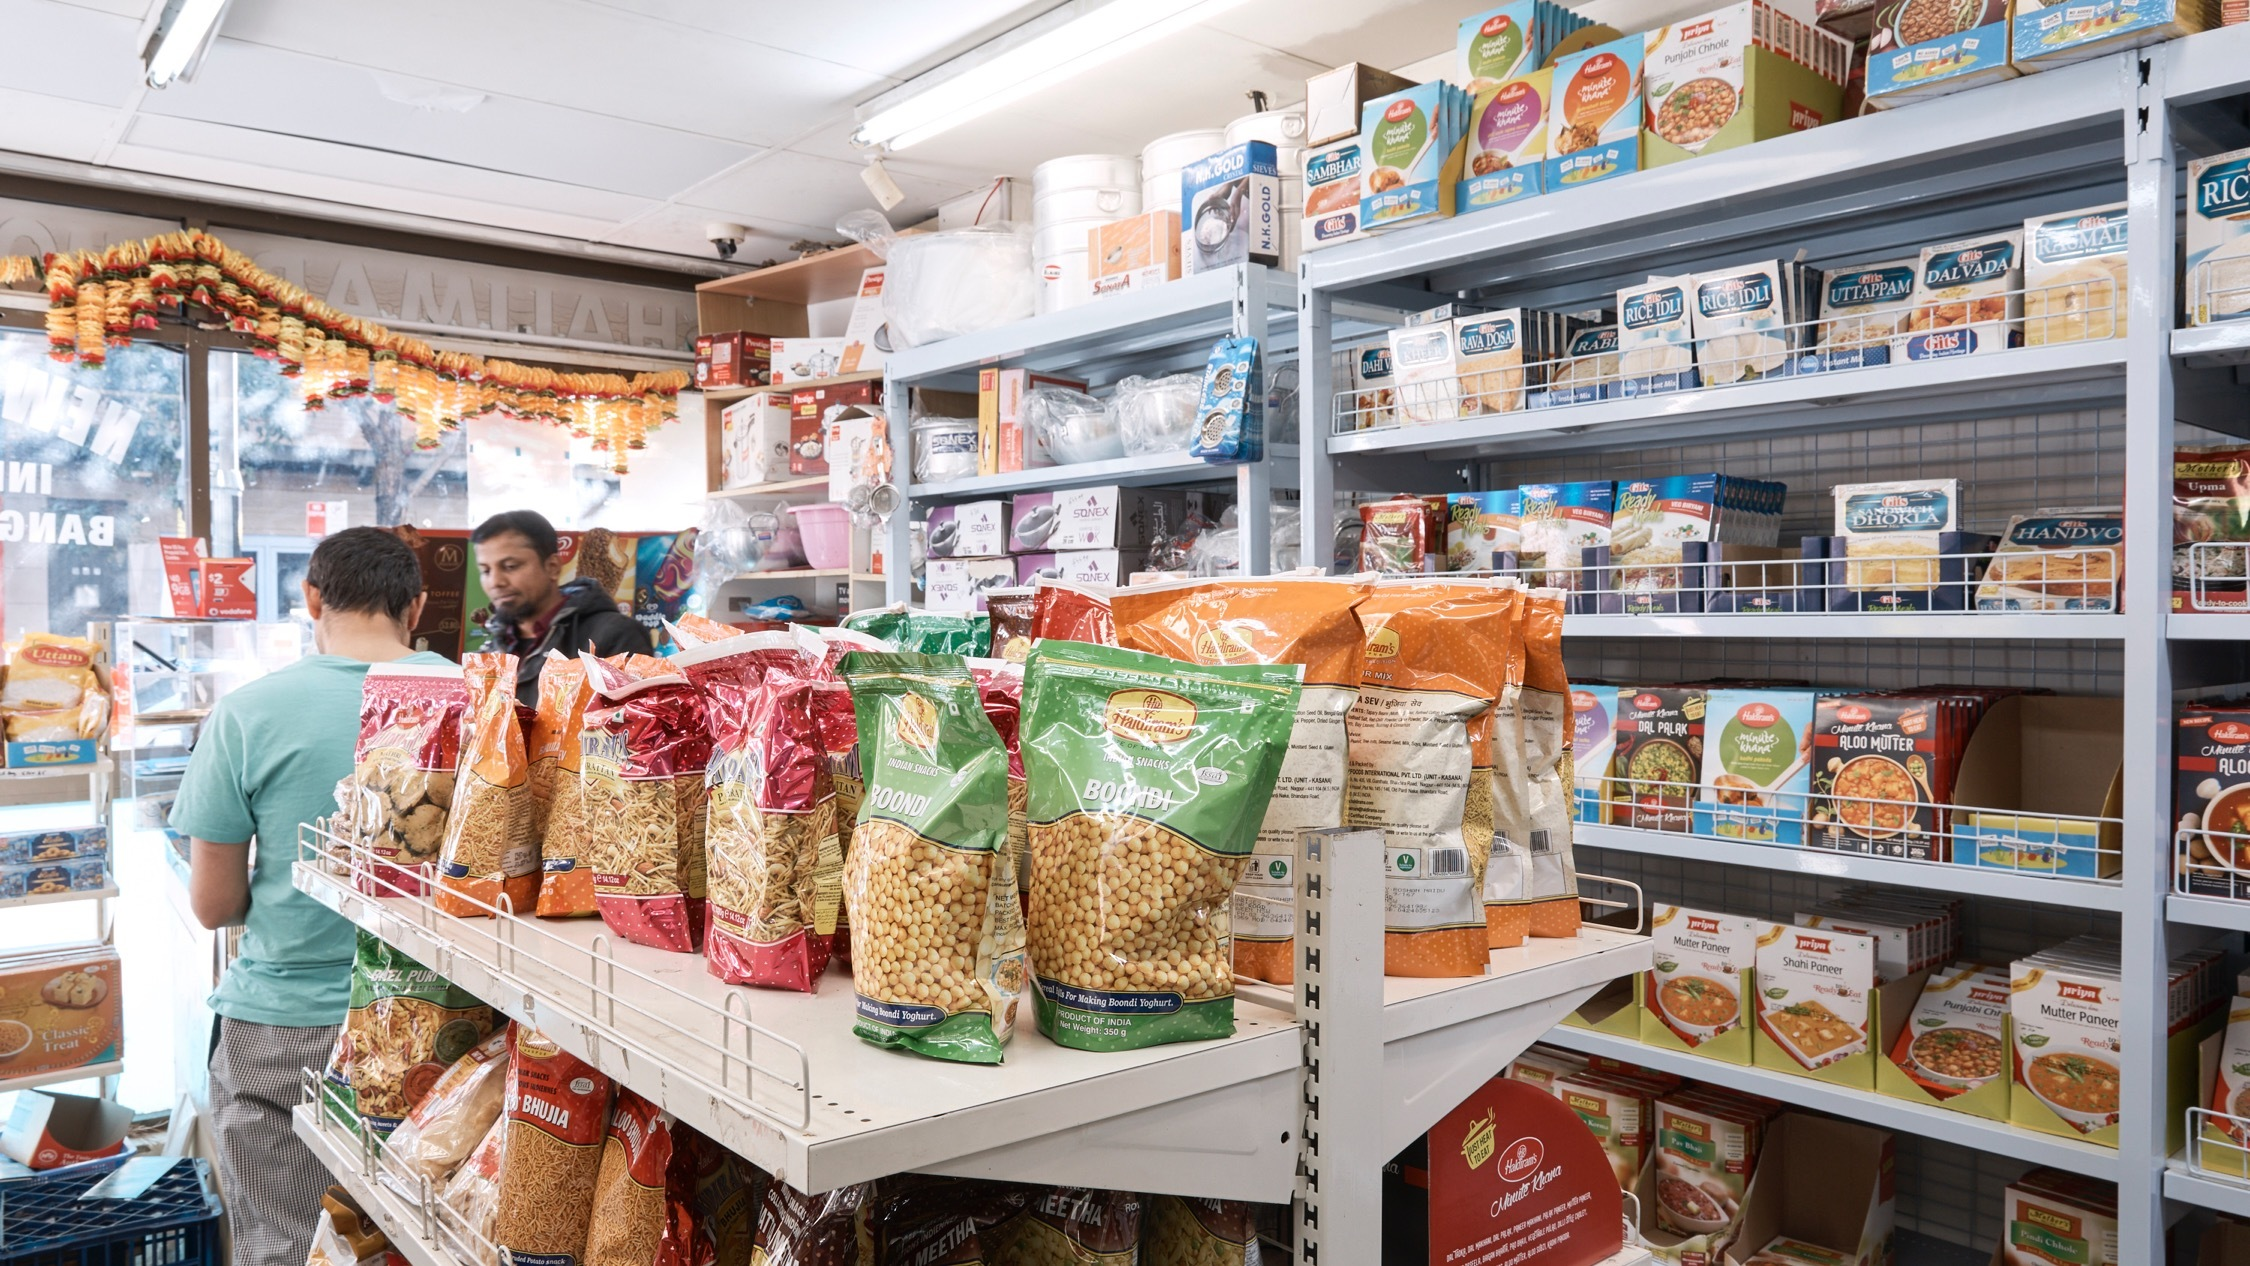 Products on shelves at New Shalimar